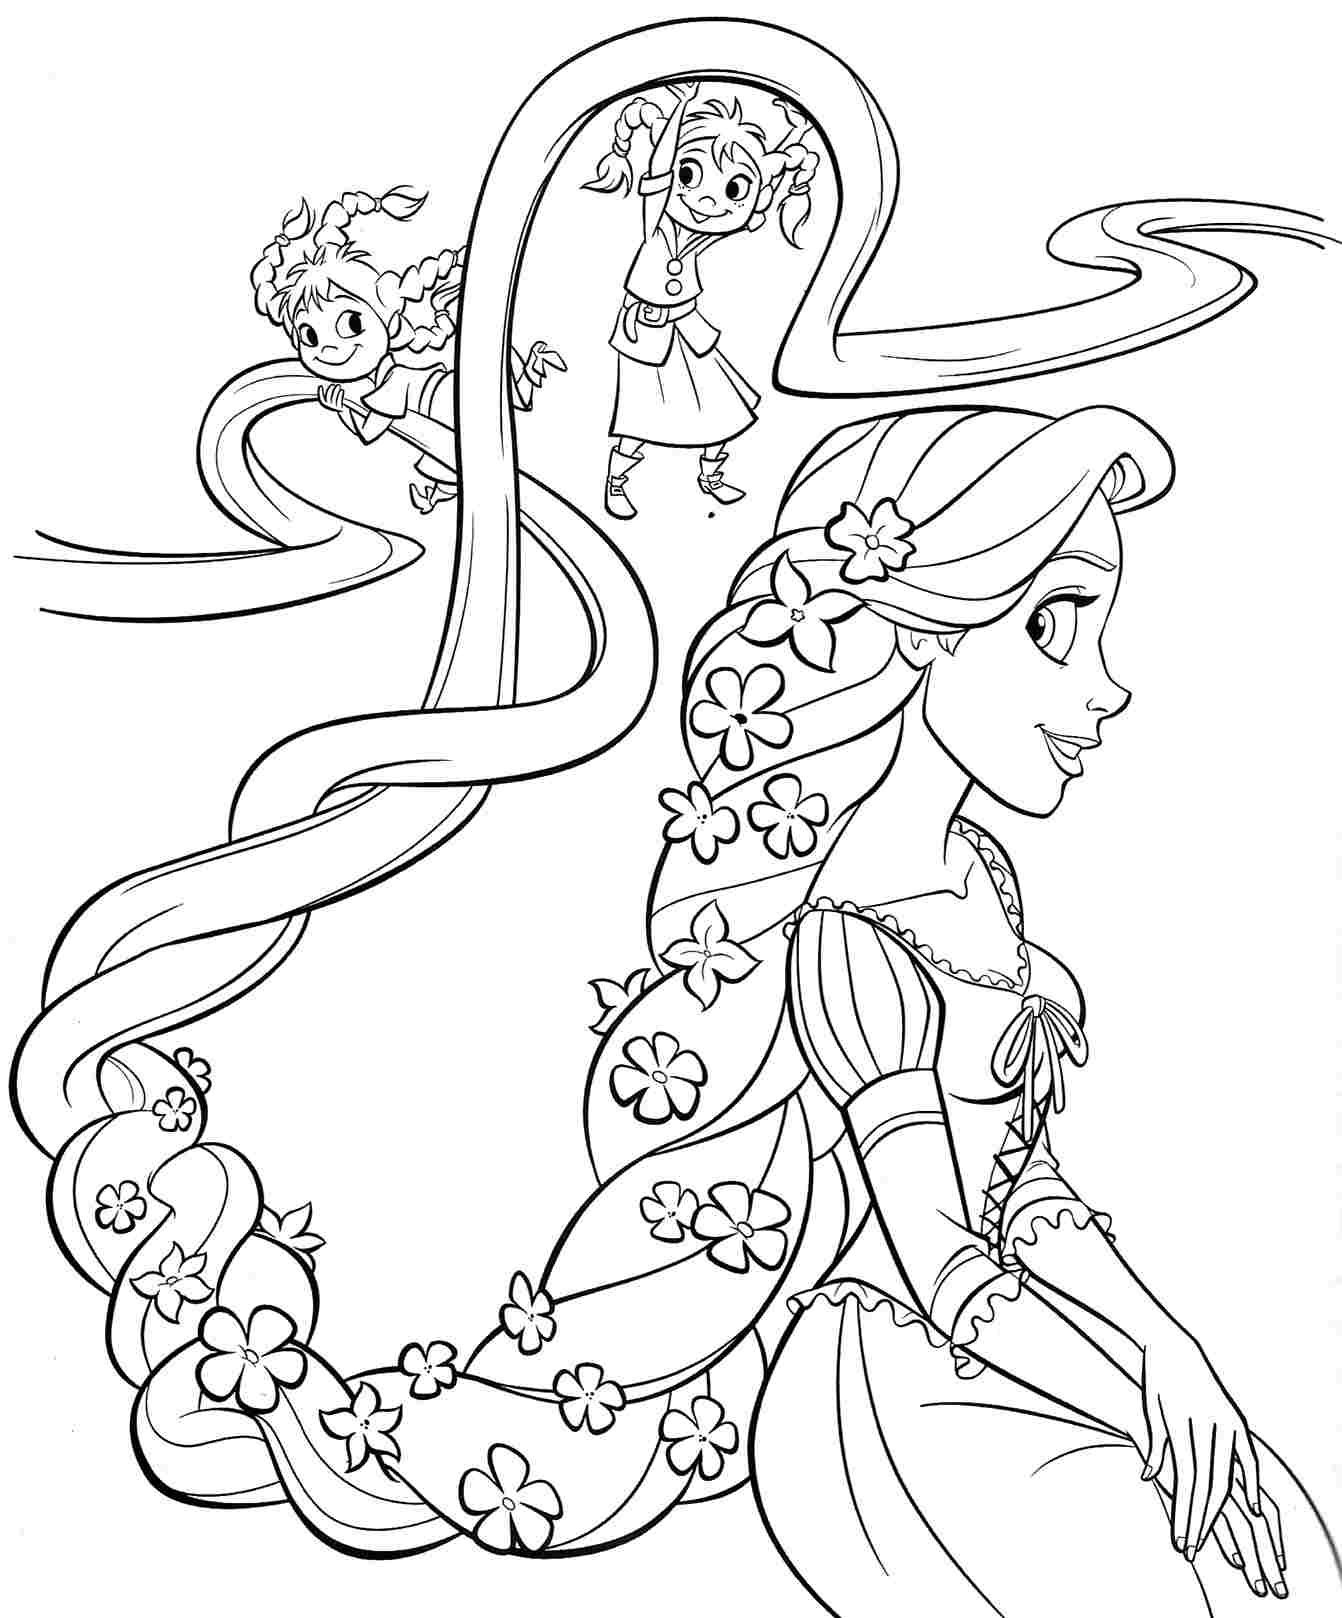 Die Eiskönigin Ausmalbilder Zum Ausdrucken : Printable Free Disney Princess Rapunzel Coloring Sheets For Kids